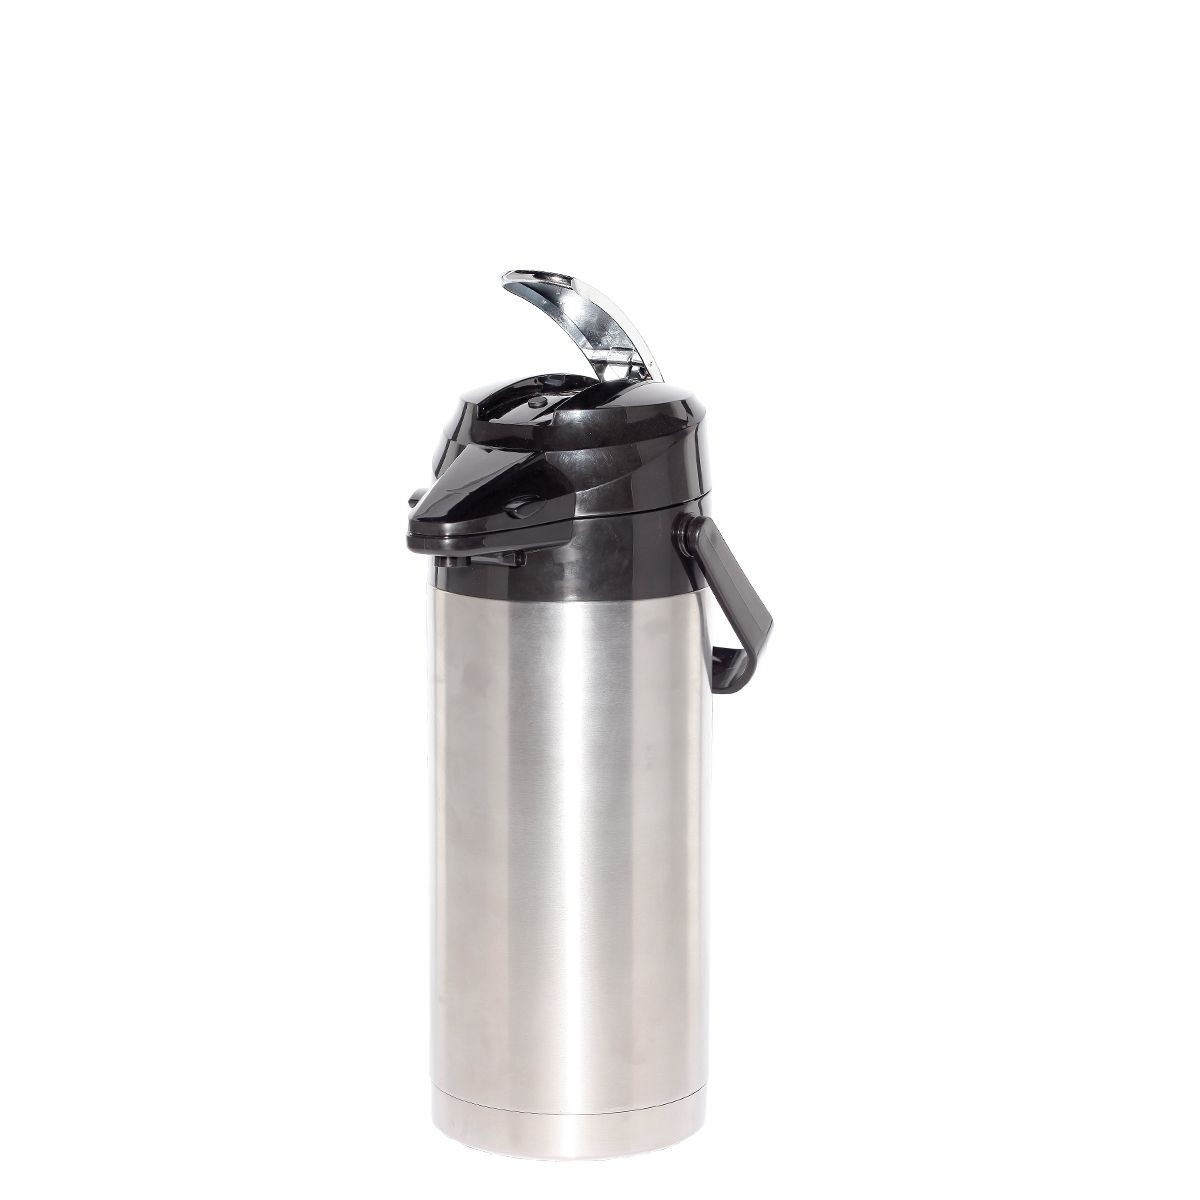 Service Ideas ENALS30S Signa-Air Stainless Steel-Lined Airpot with Lever Lid, 3 Liter